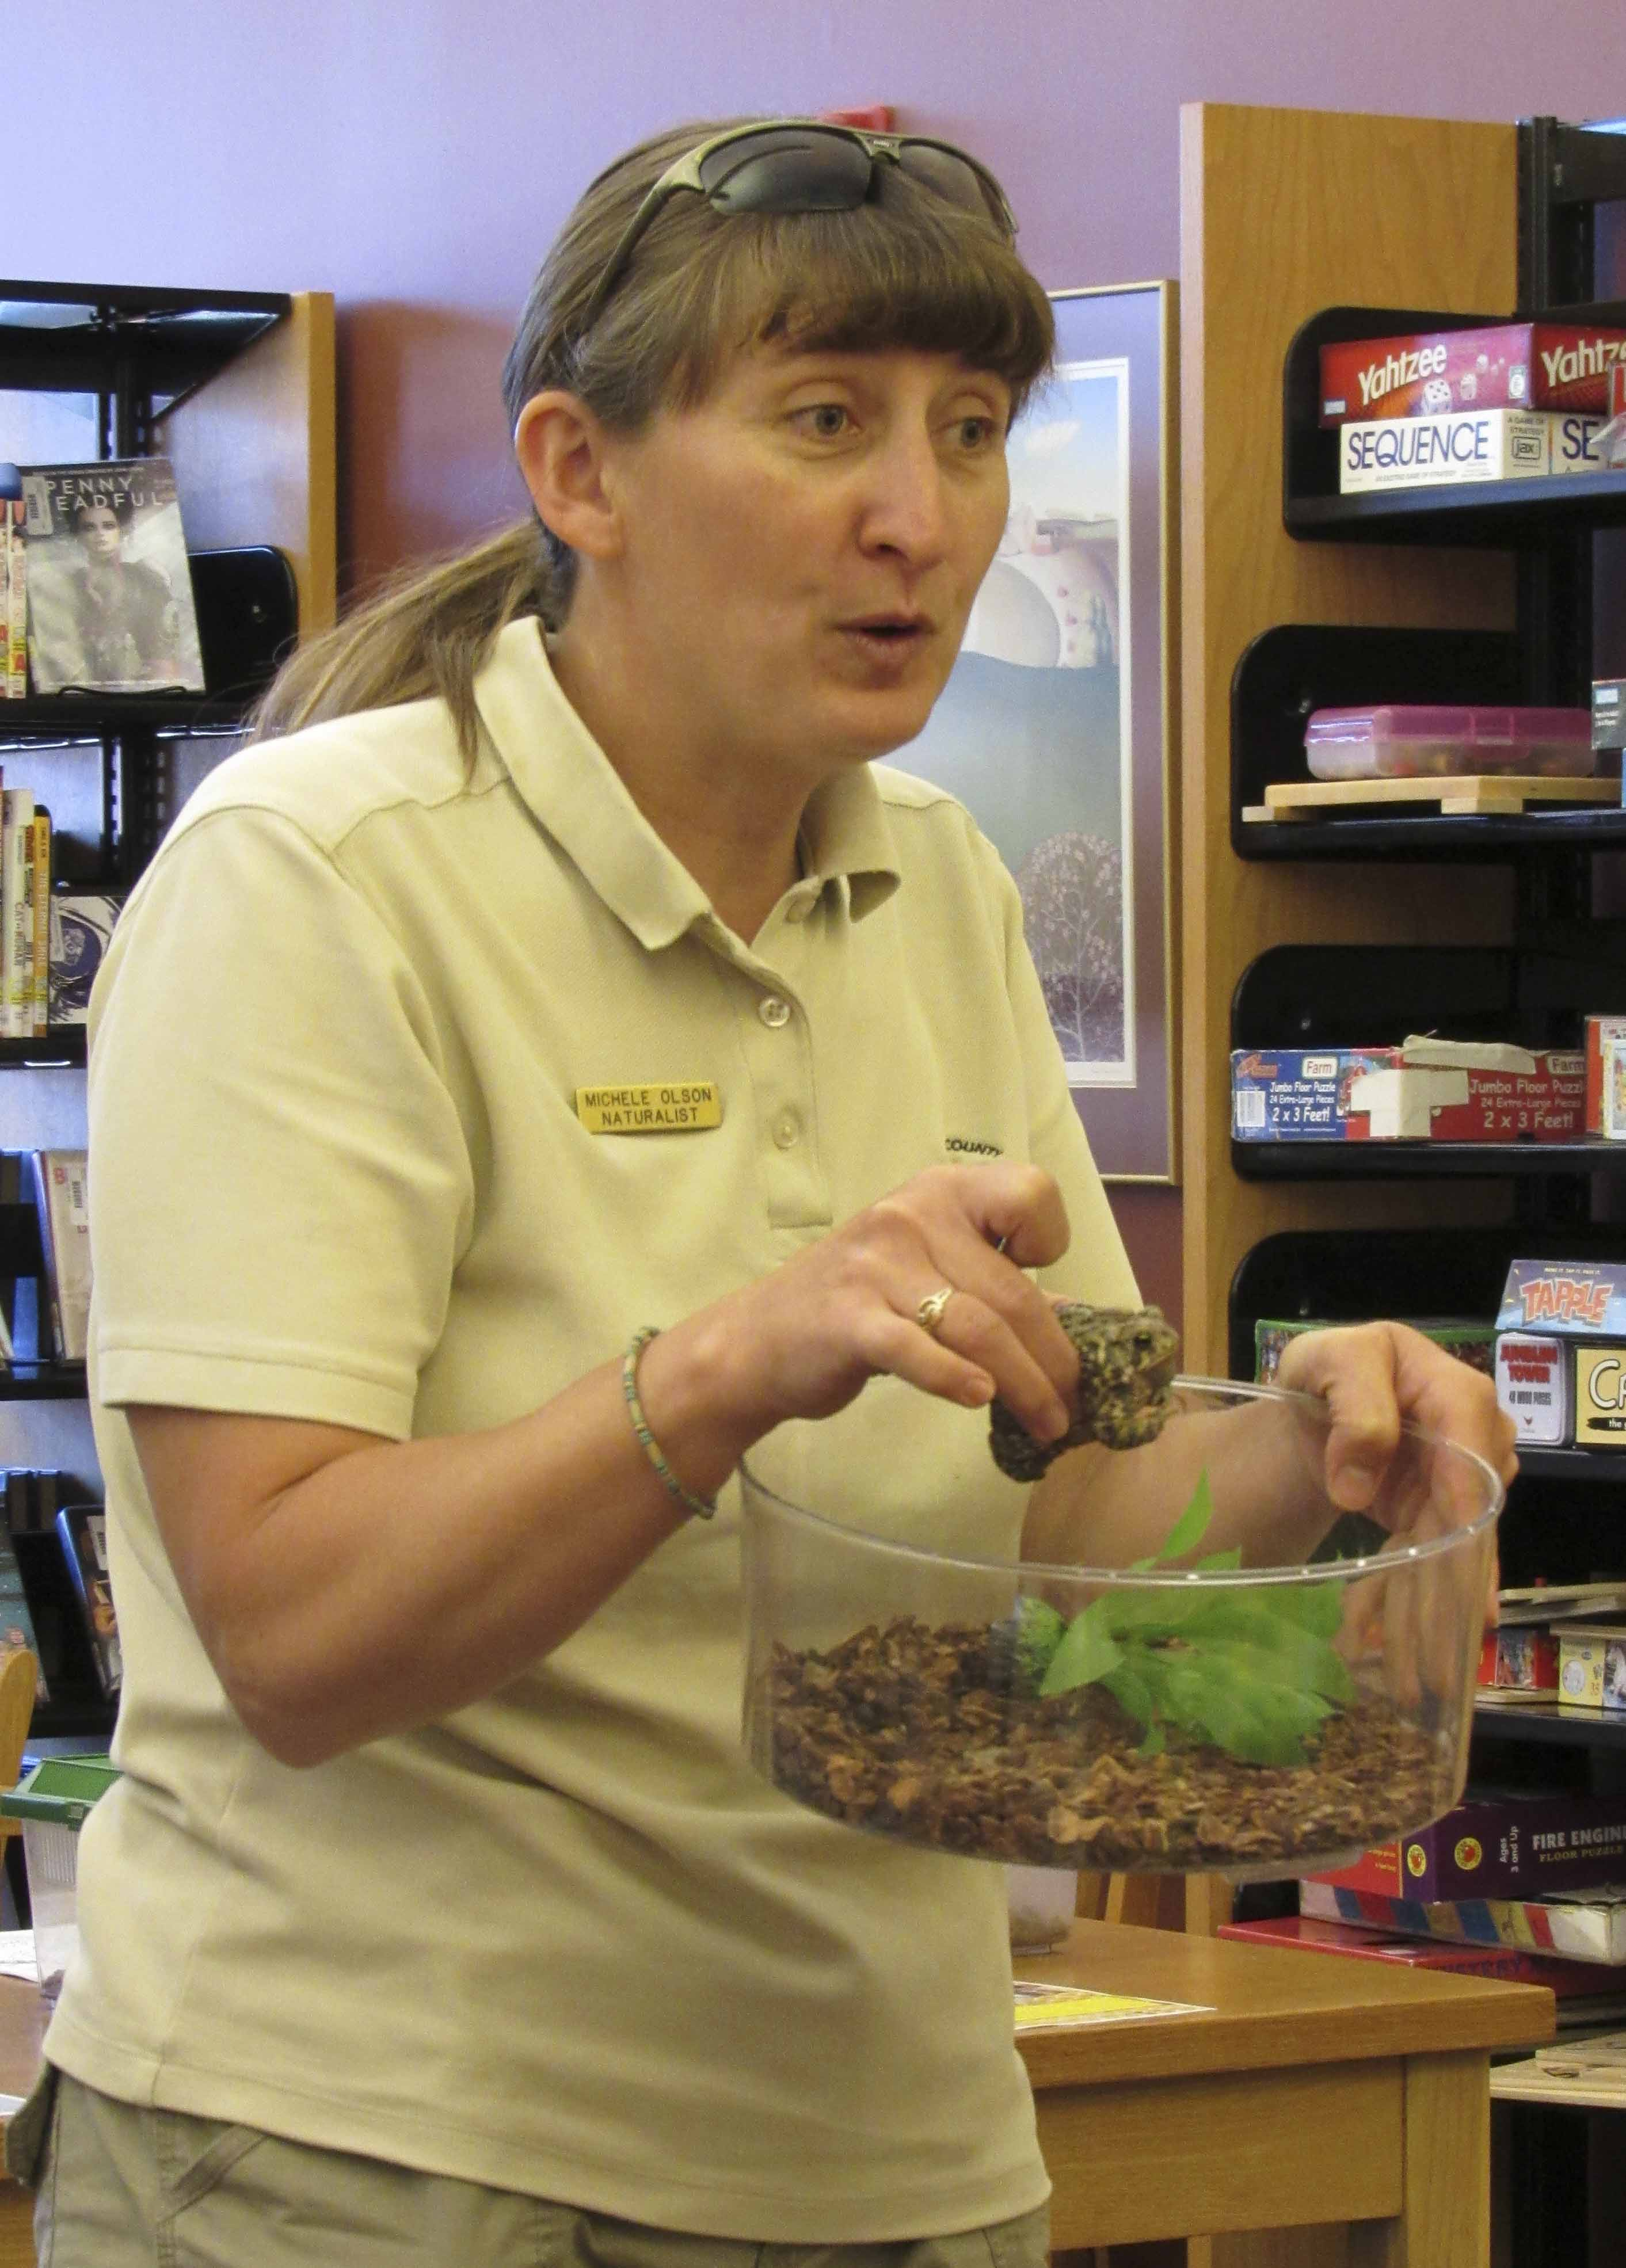 Olson's program at the library was all about backyard animals. She brought along a toad, box turtle, and garter snake for kids to see. Here, she introduces the crowd to a toad that's housed at the Nature Center at Central Park.